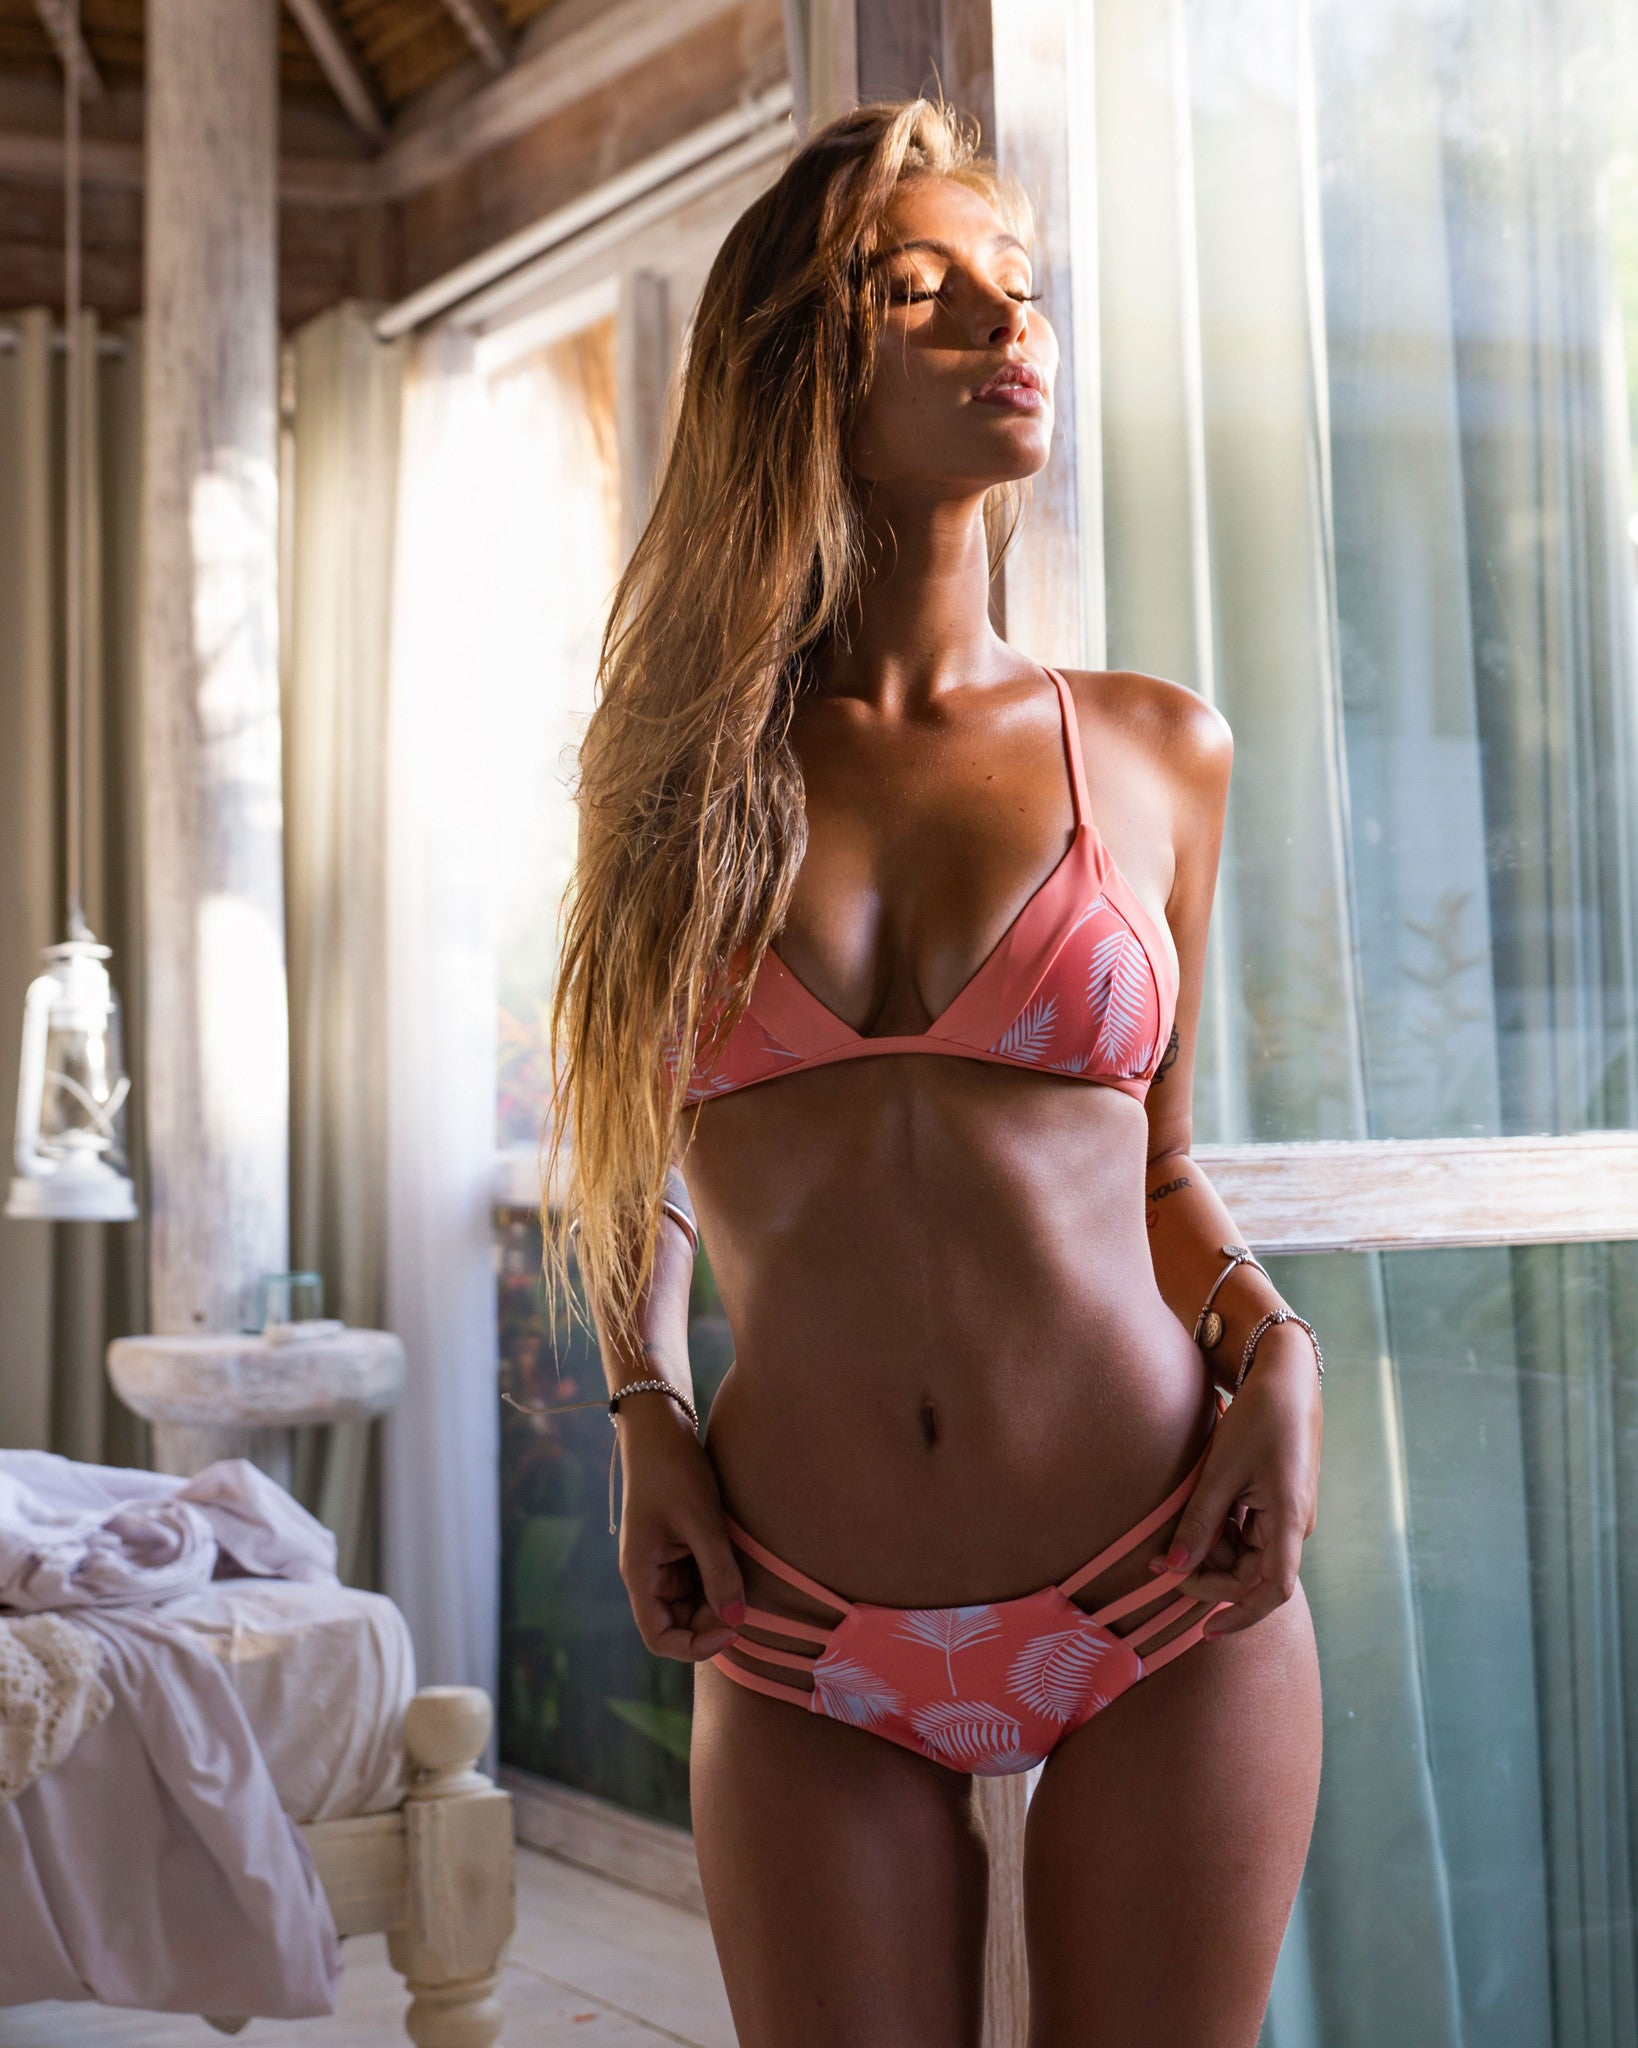 Mancora reversible btms - Peach Palms / Grapefruit - cheeky cut brazilian surf bikinis Cenote Swimwear that stays on in the surf